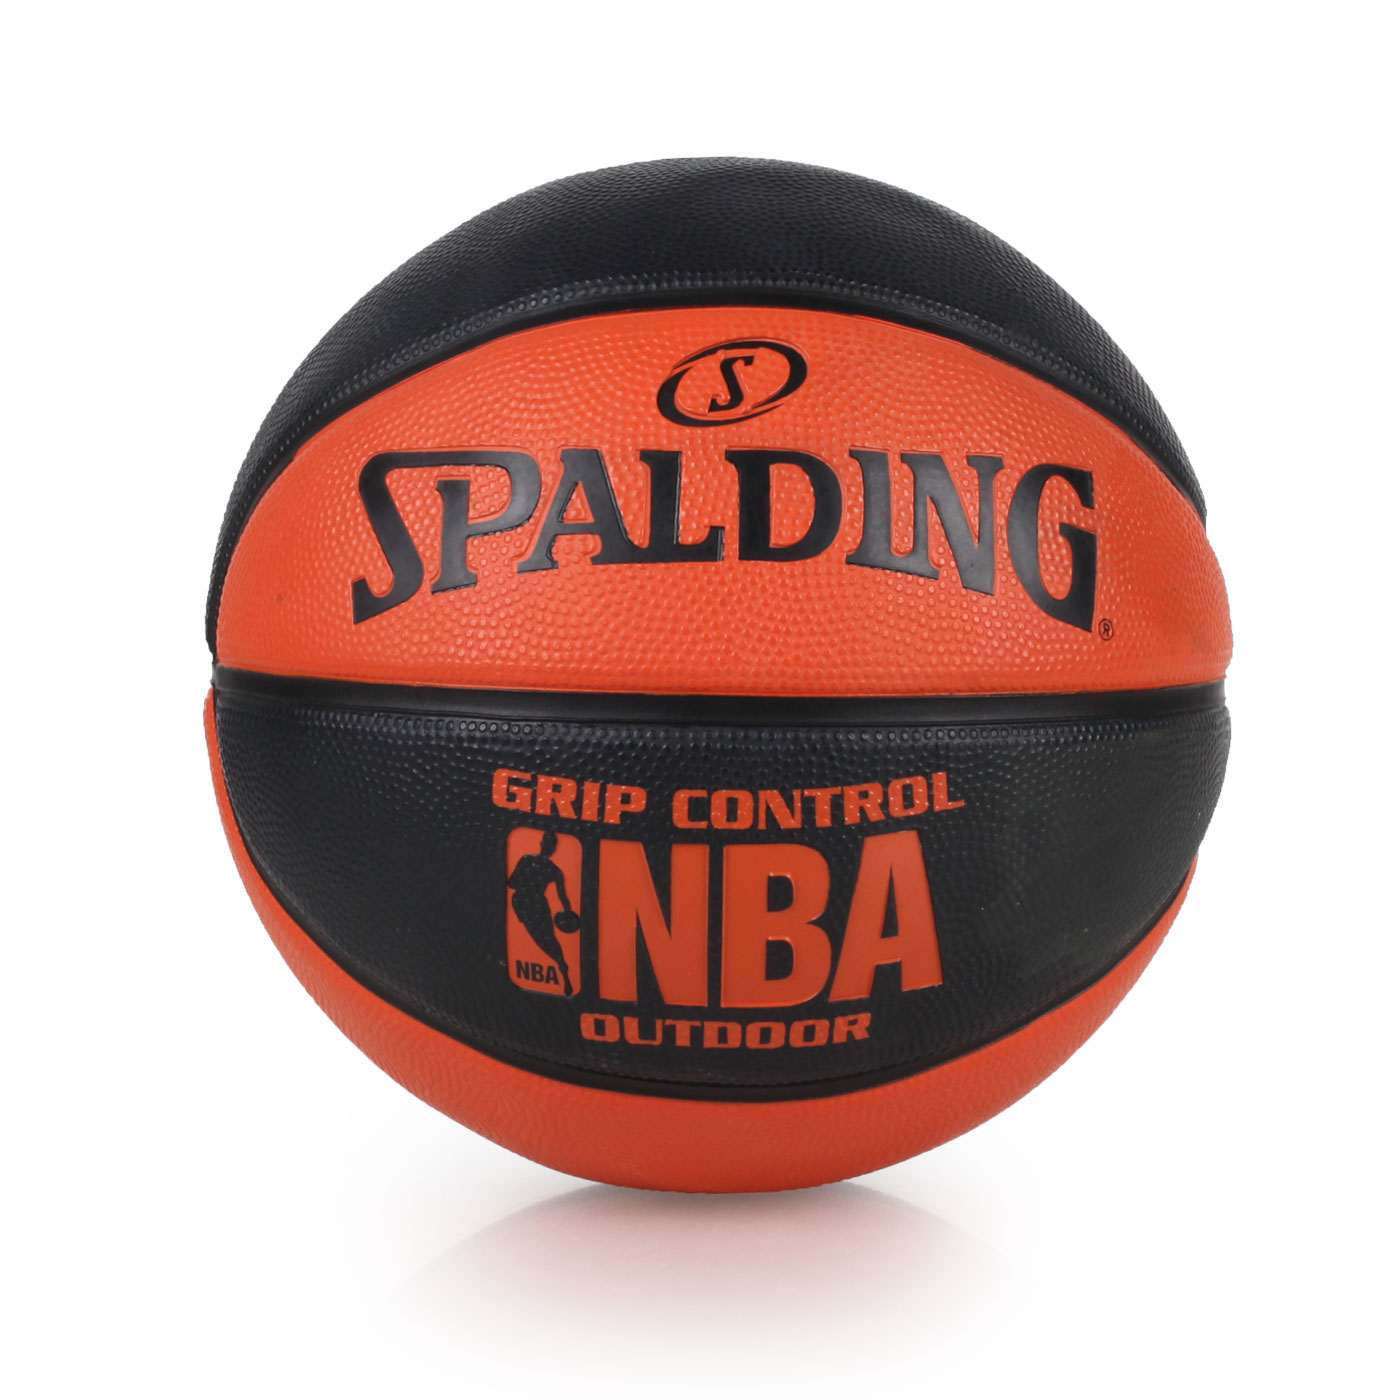 SPALDING NBA Grip Control Outdoor 籃球 SPA83081